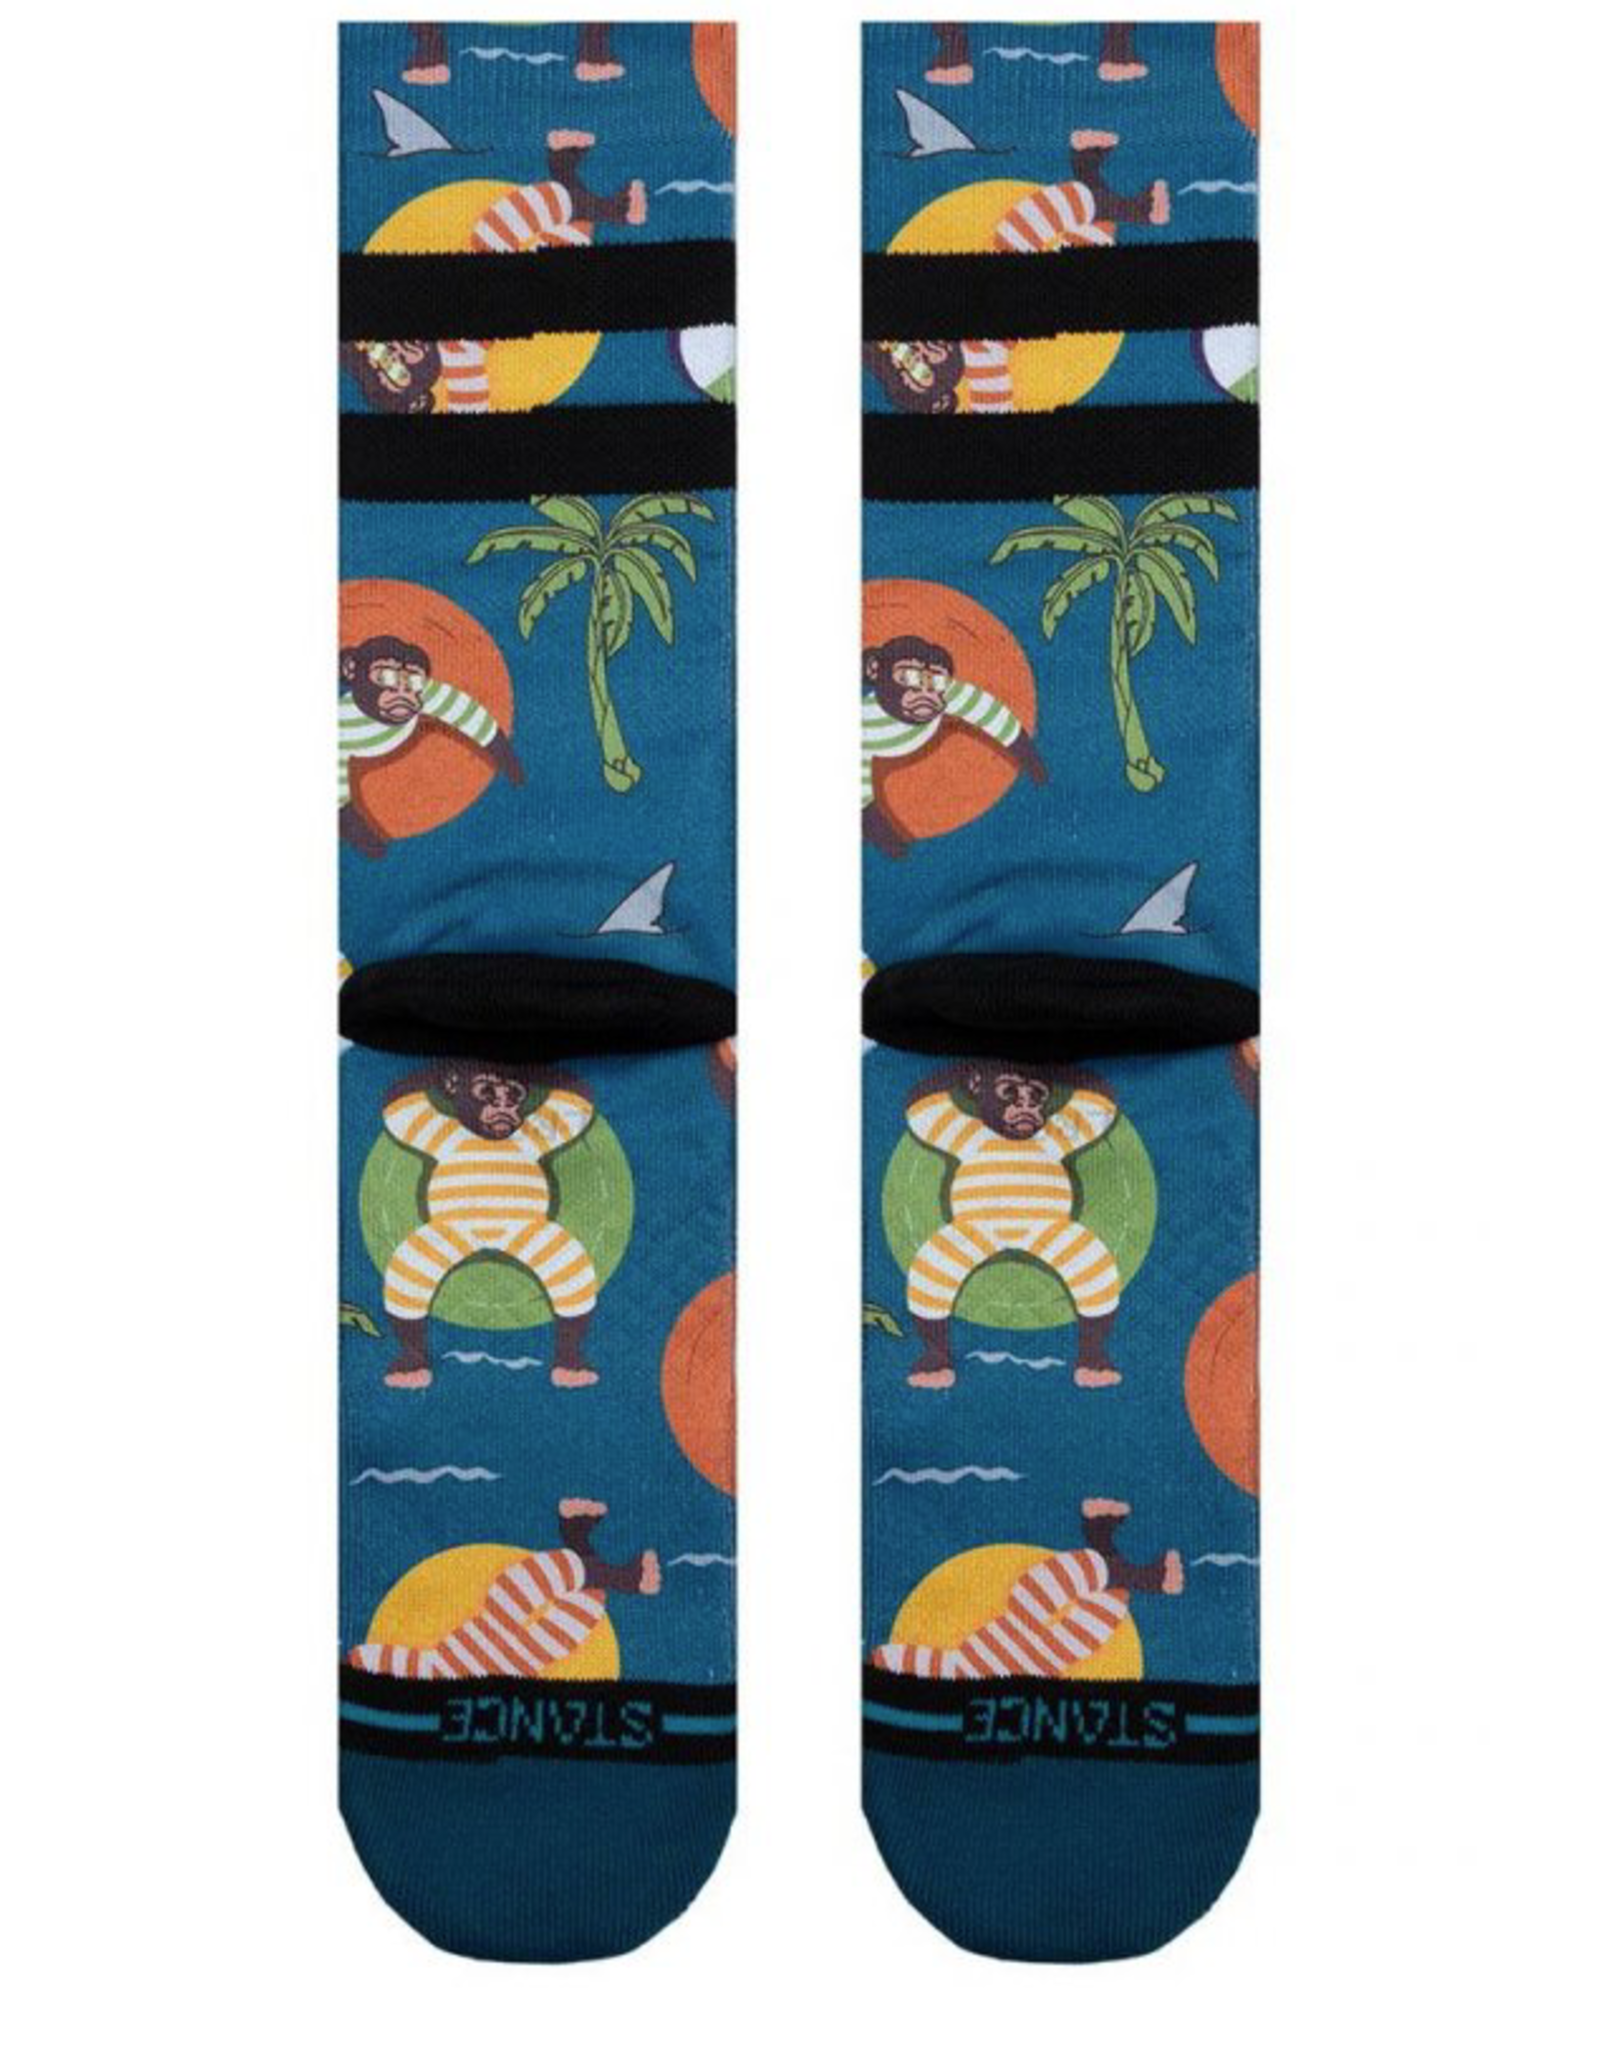 Stance Monkey Chillin - Teal